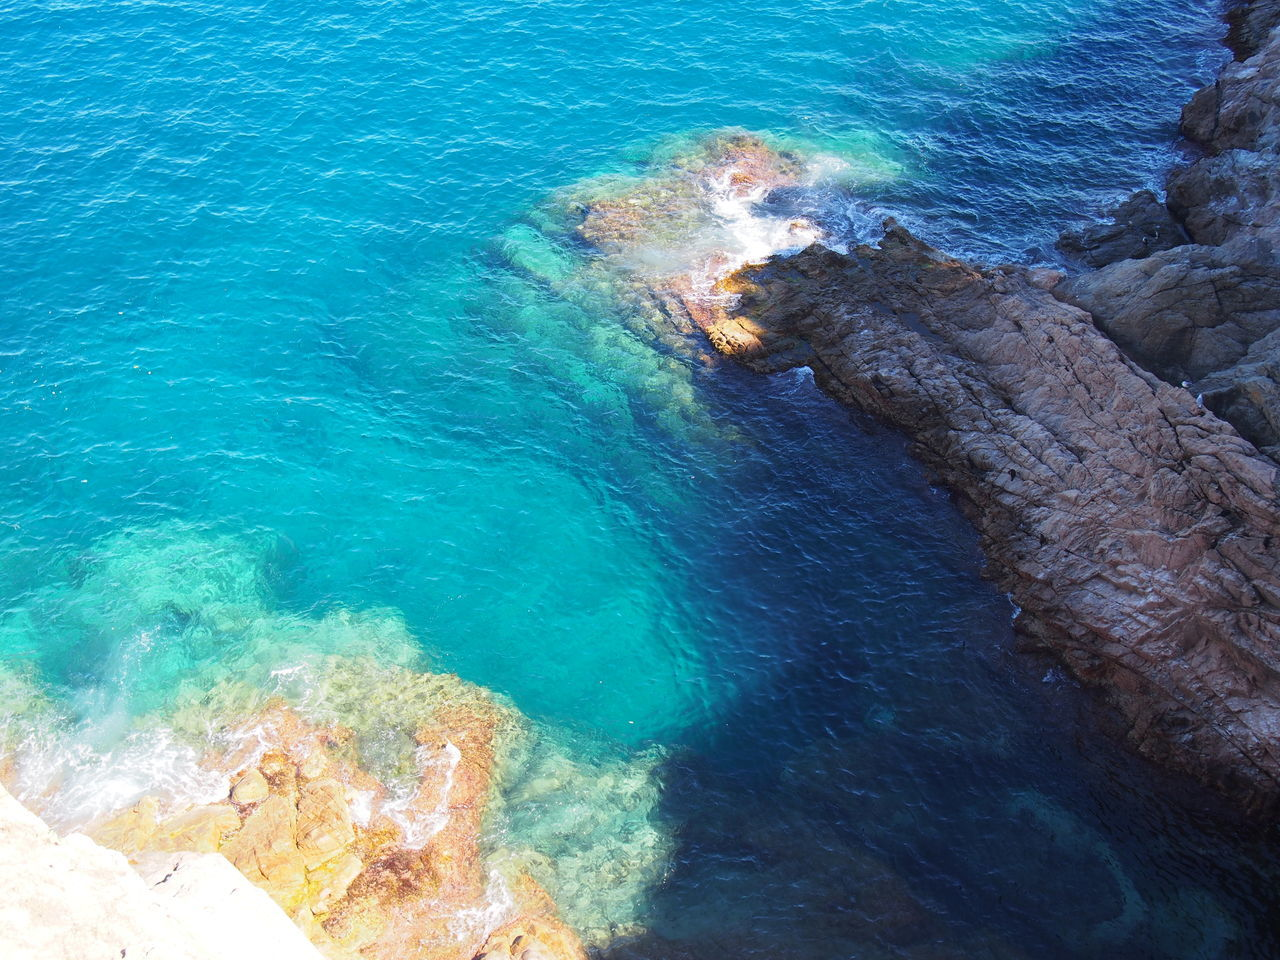 High Angle View Of Rocky Shore And Sea